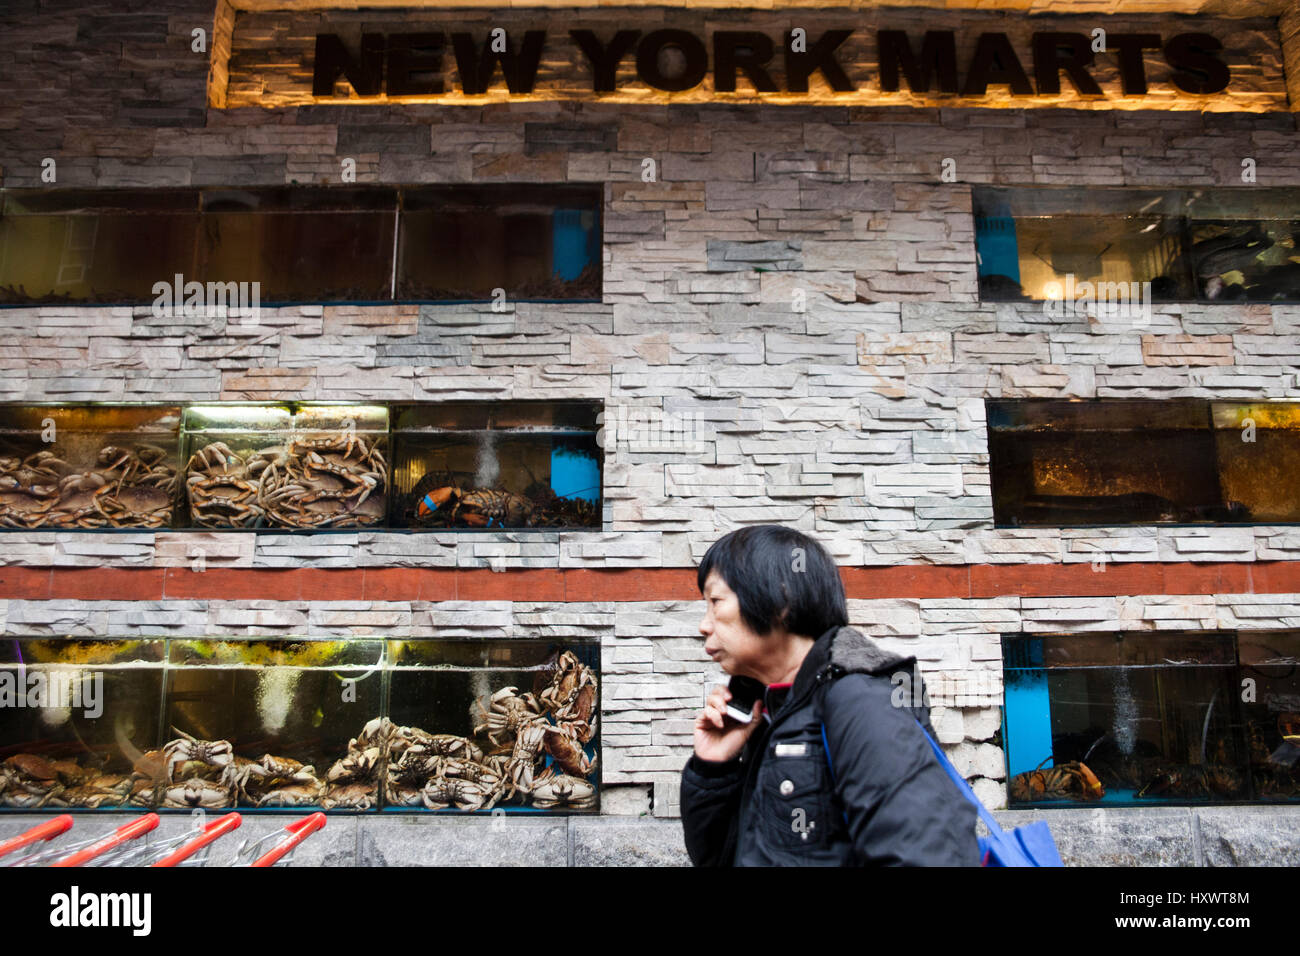 The New York Marts is a seafood seller in New York City, United States. - Stock Image